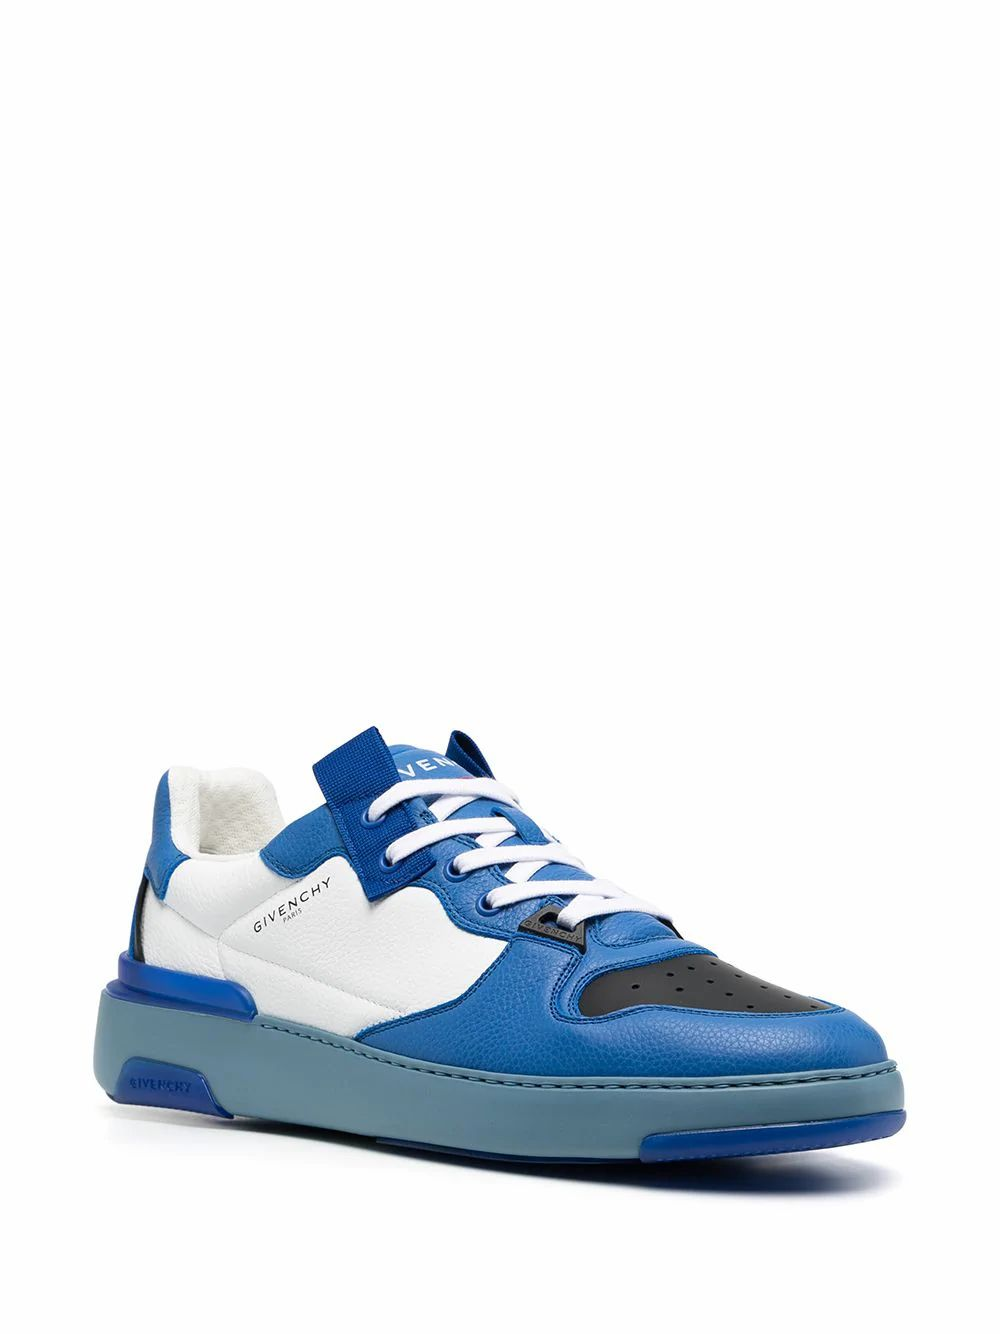 GIVENCHY Leathers GIVENCHY MEN'S BLUE LEATHER SNEAKERS